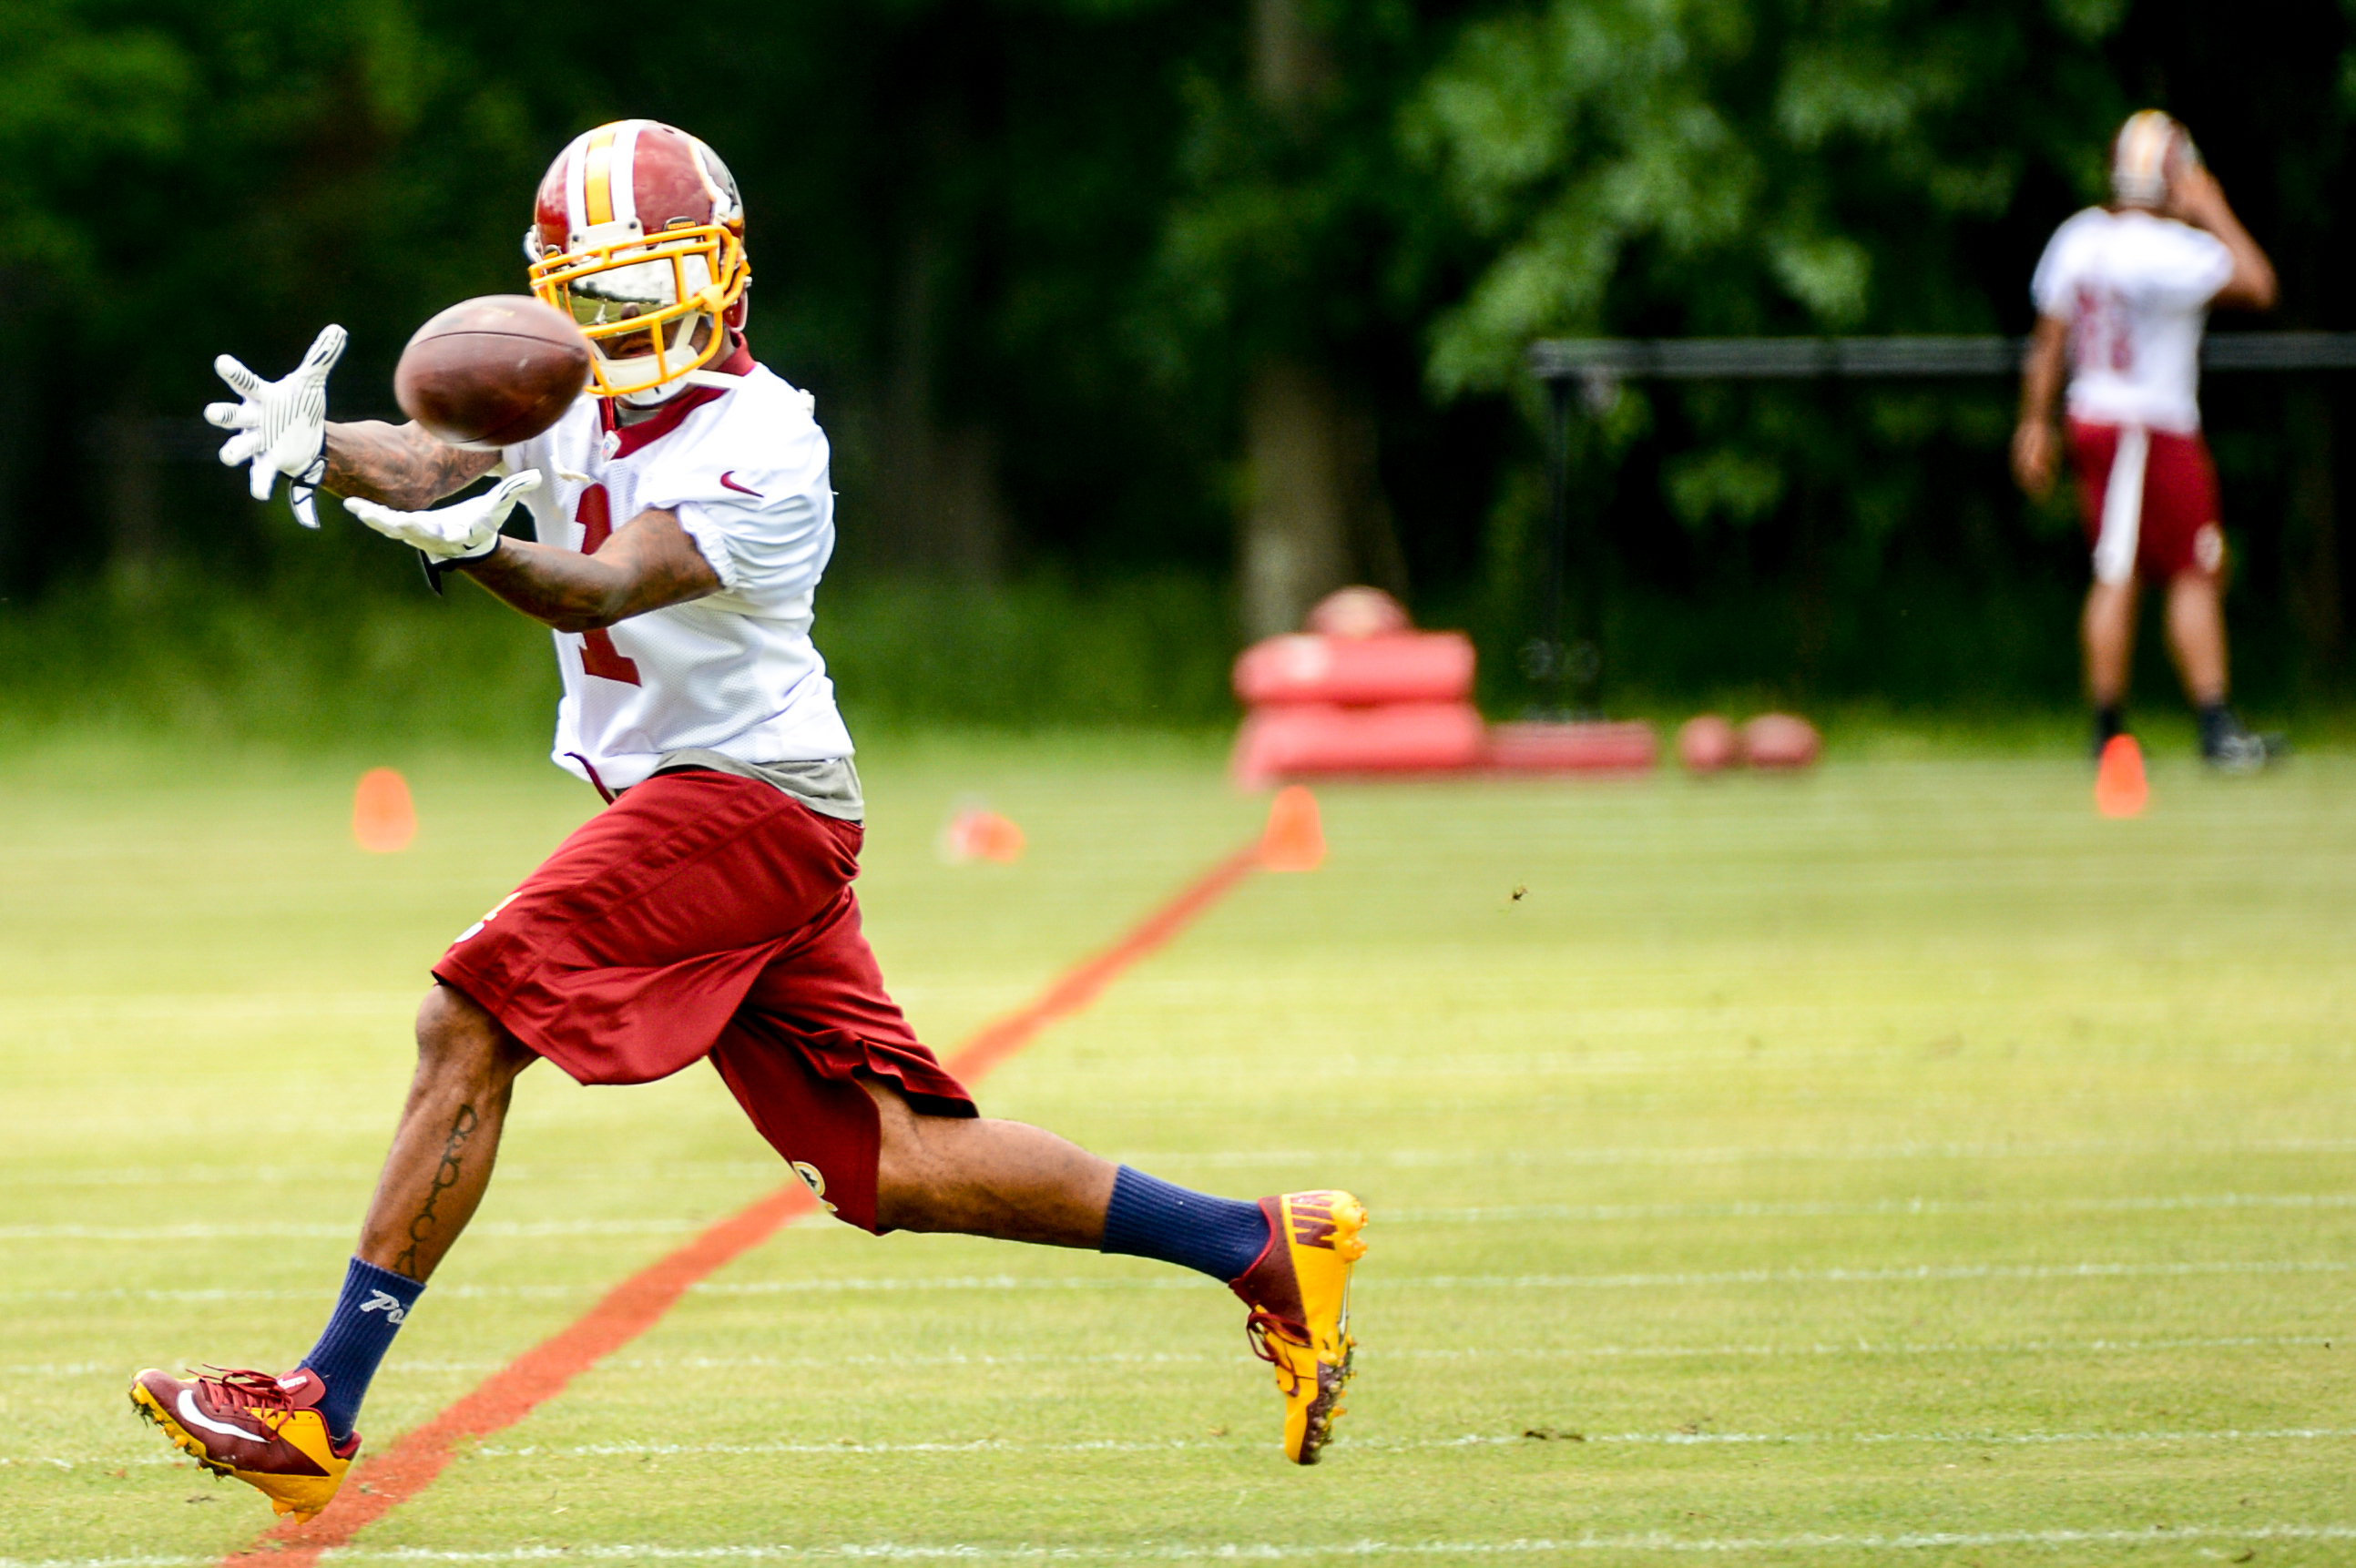 DeSean Jackson back in action at Redskins practice - Washington Times adbd1a82594